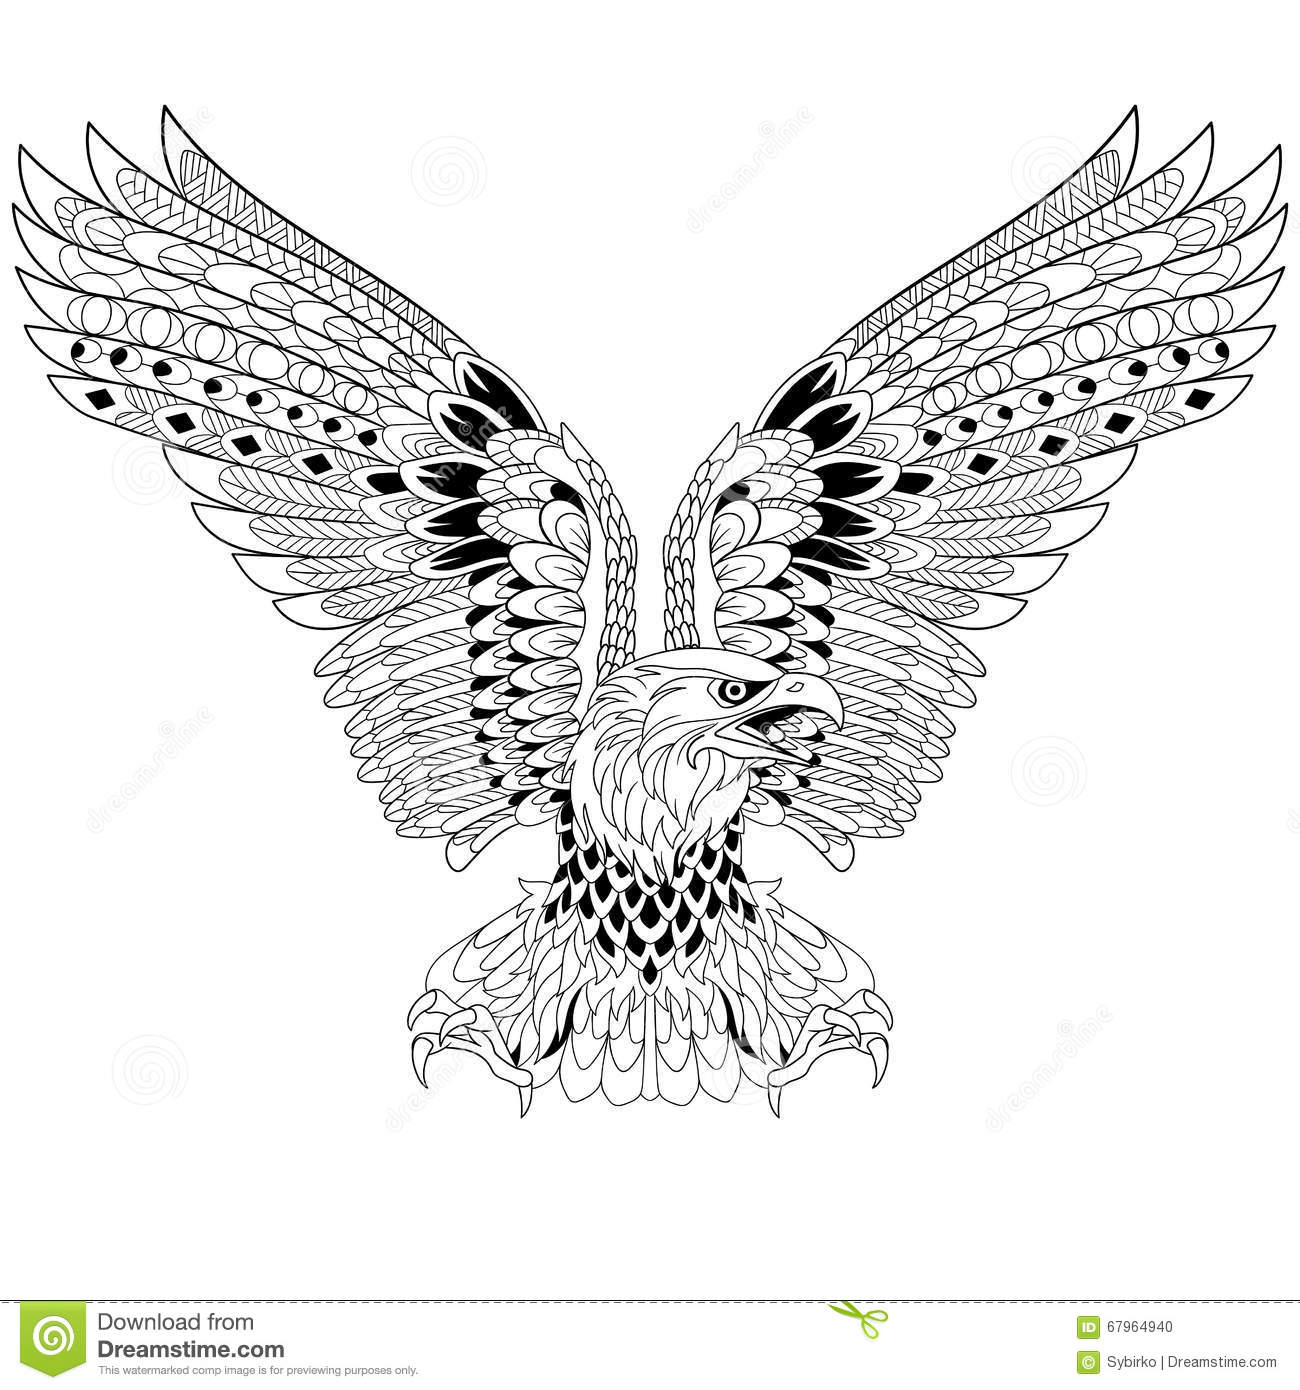 eagle mandala coloring pages - zentangle stylized eagle stock vector illustration of